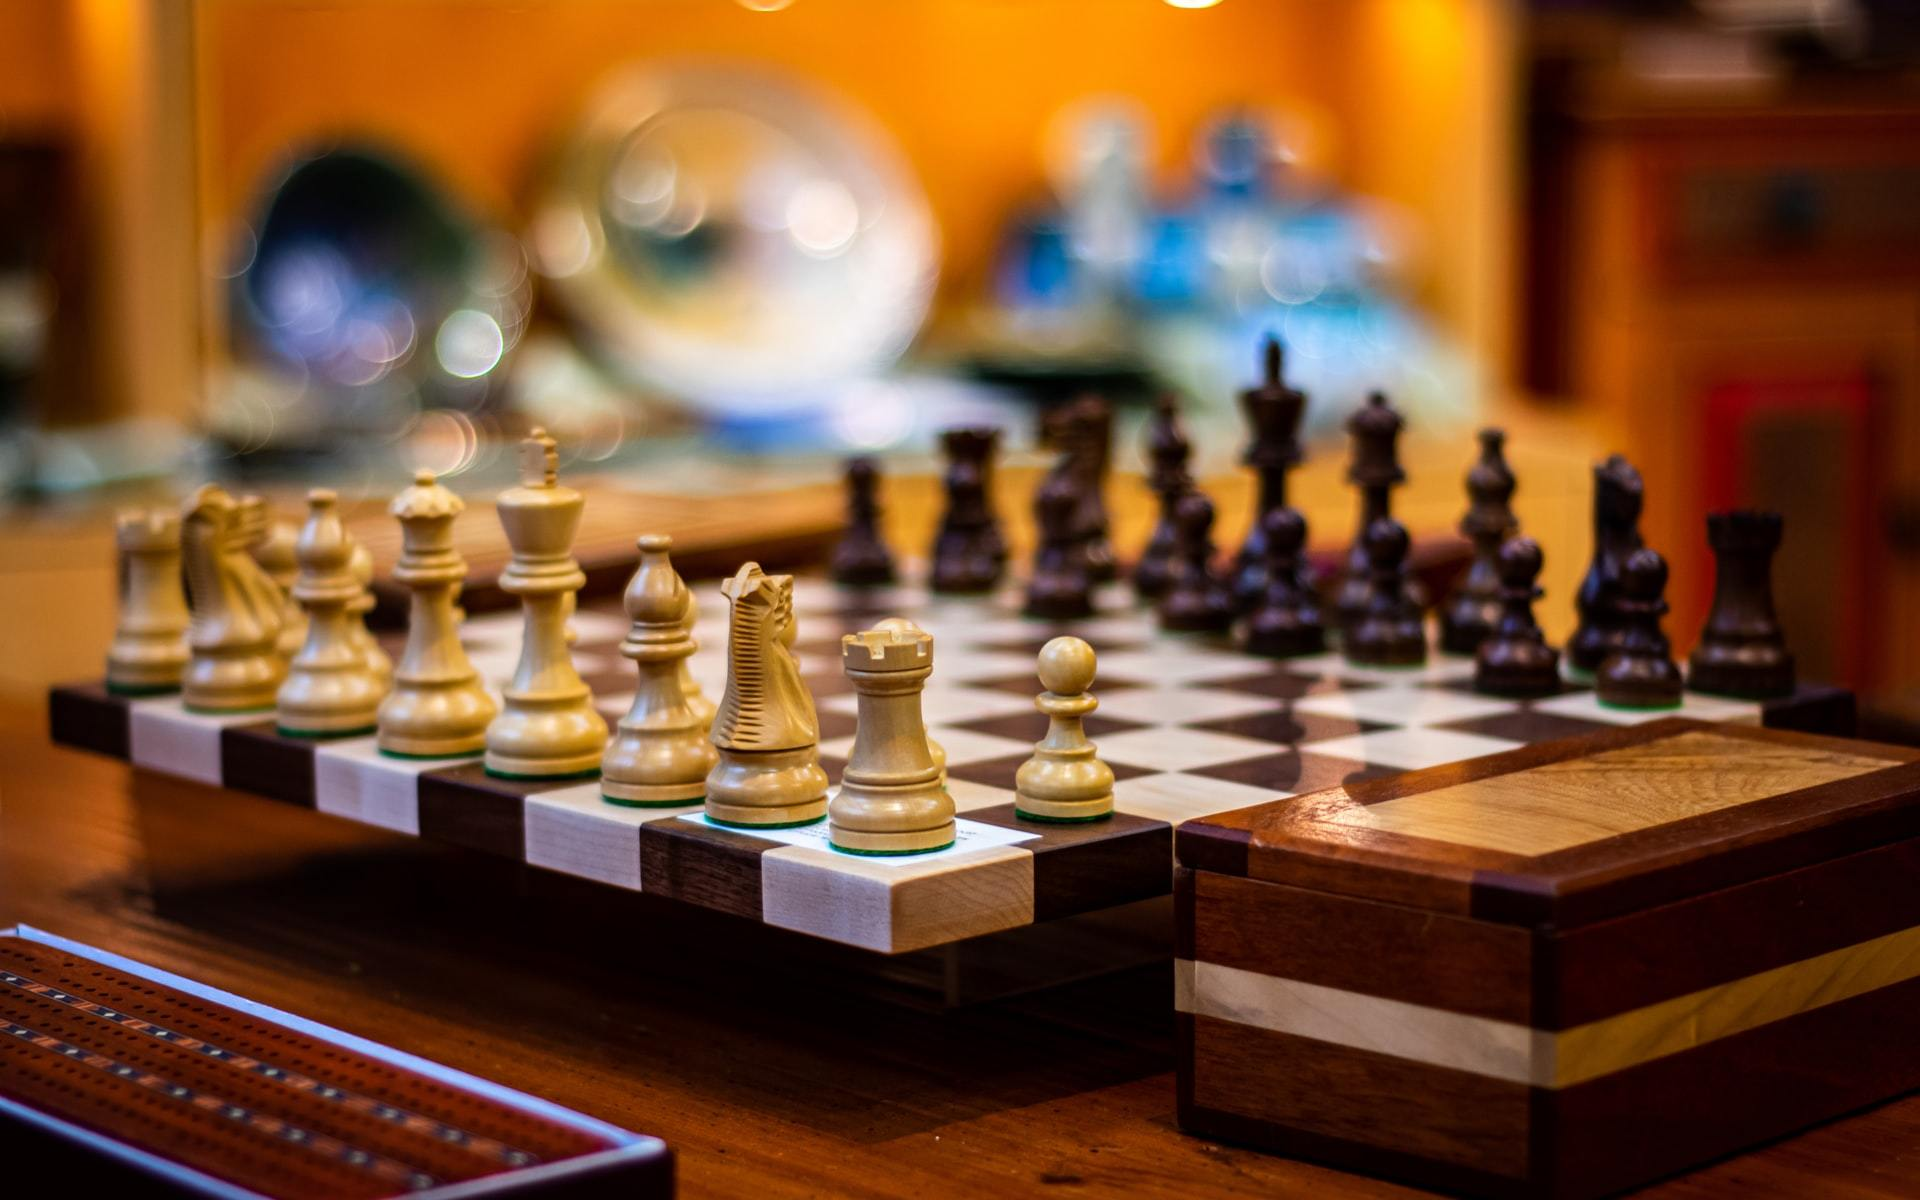 stafford gambit chess opening cover